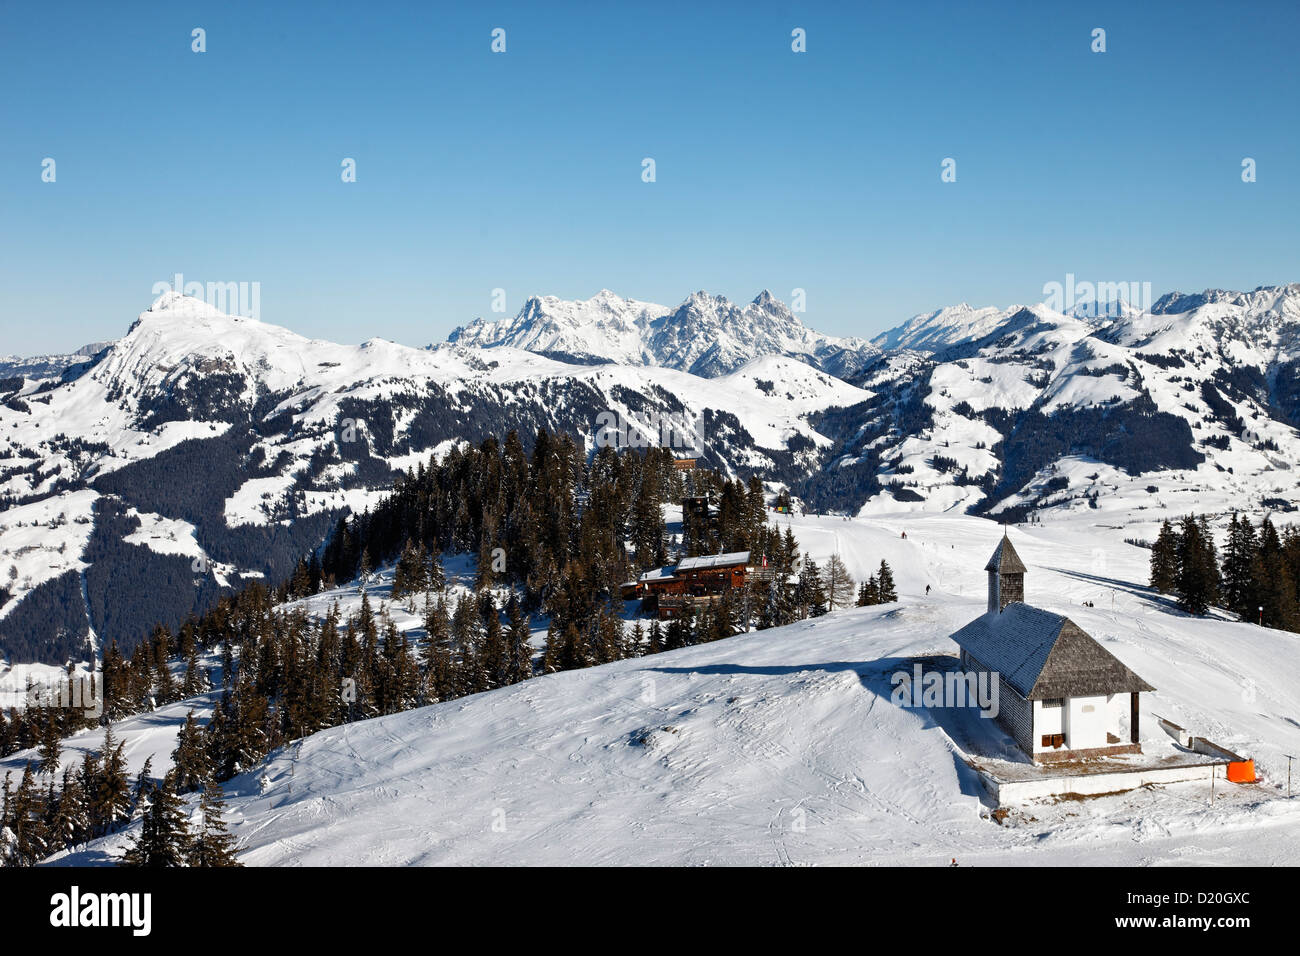 Hahnenkamm Summit, Kitzbuhler Horn in the background, Kitzbuhel, Tyrol, Austria Stock Photo